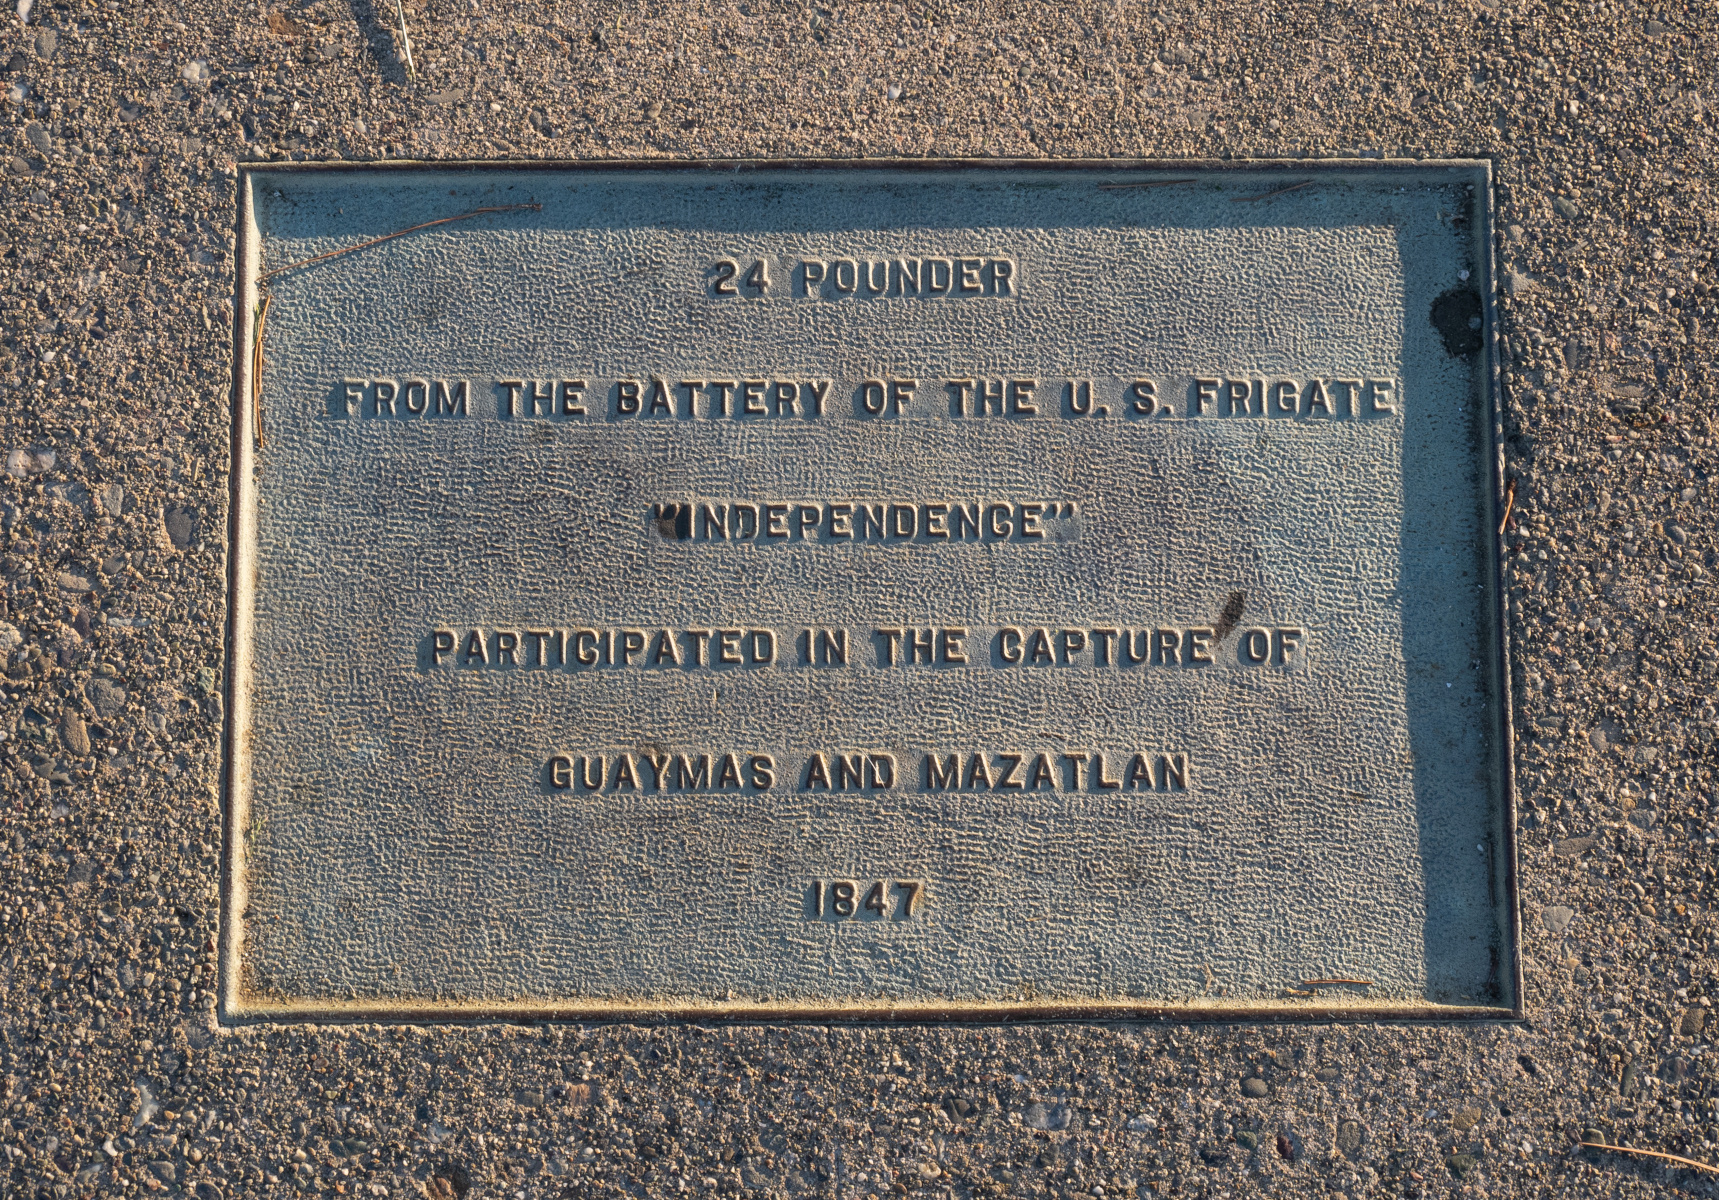 24-pounder cannon plaque